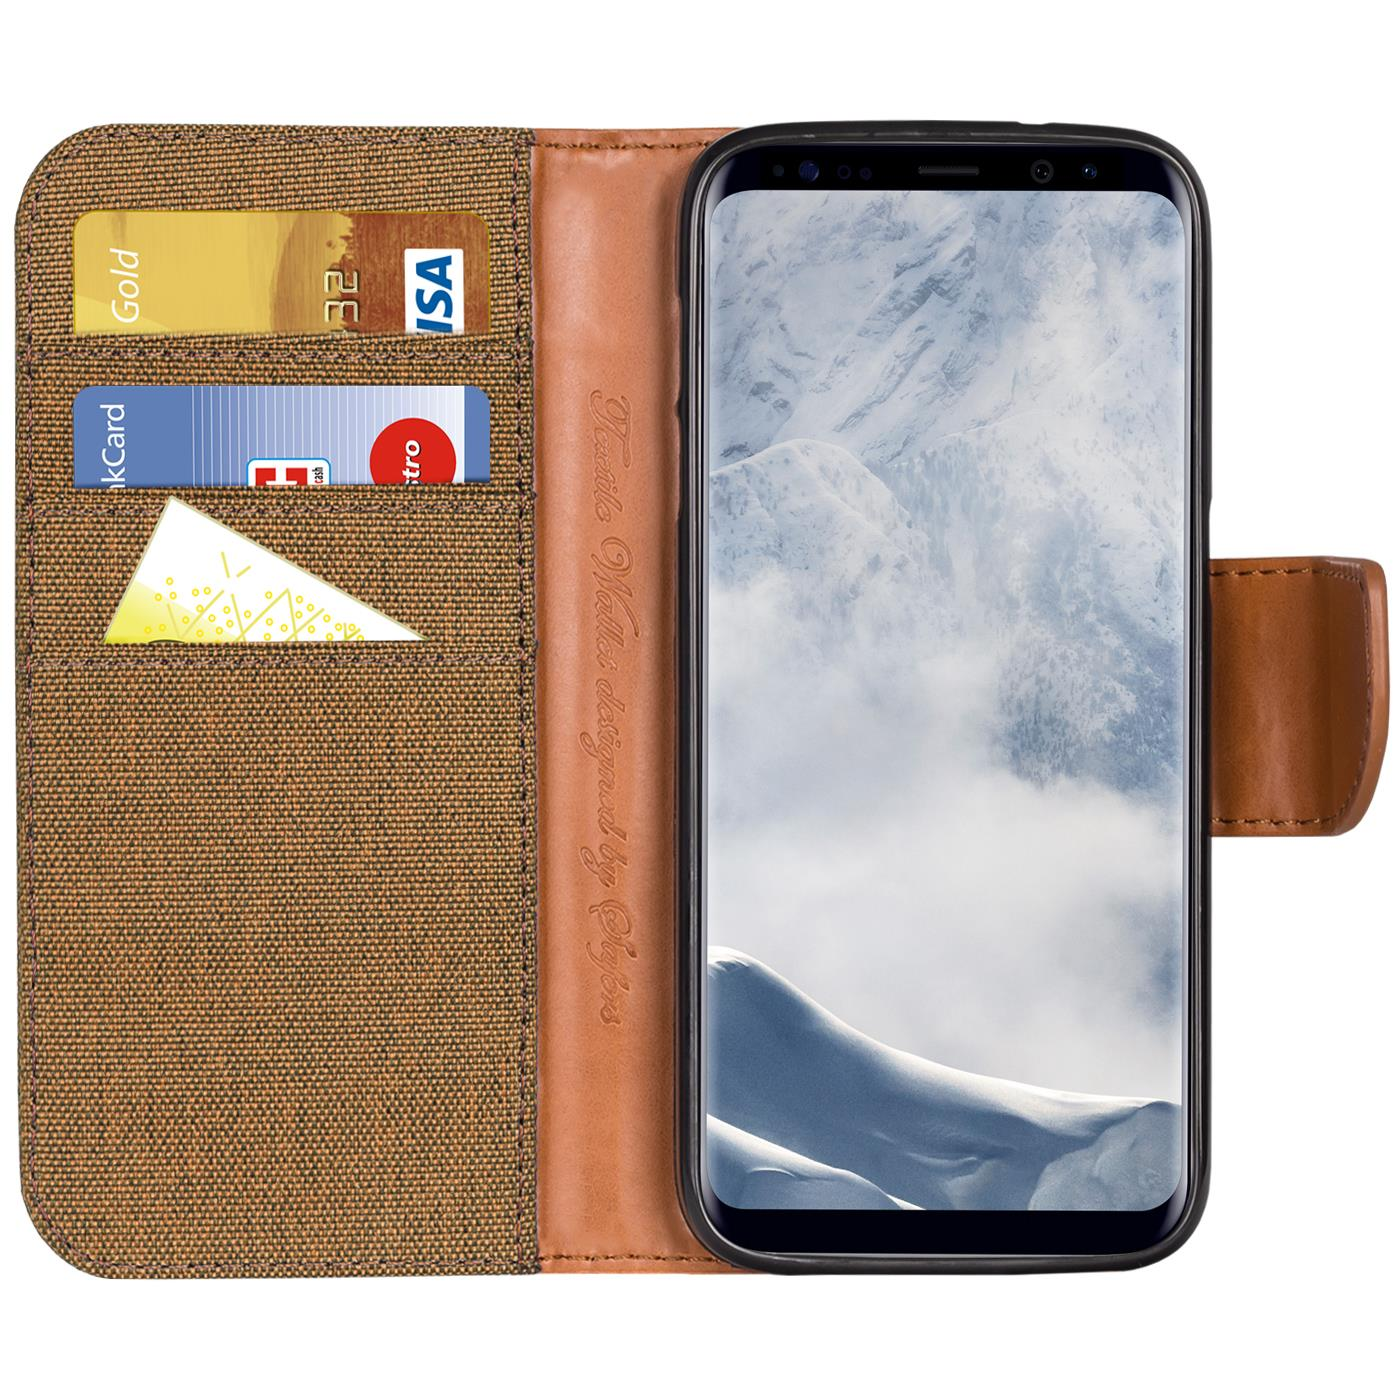 Samsung-Galaxy-S8-Plus-Phone-PU-Leather-Magnetic-Flip-Case-Wallet-Denim-Cover thumbnail 28